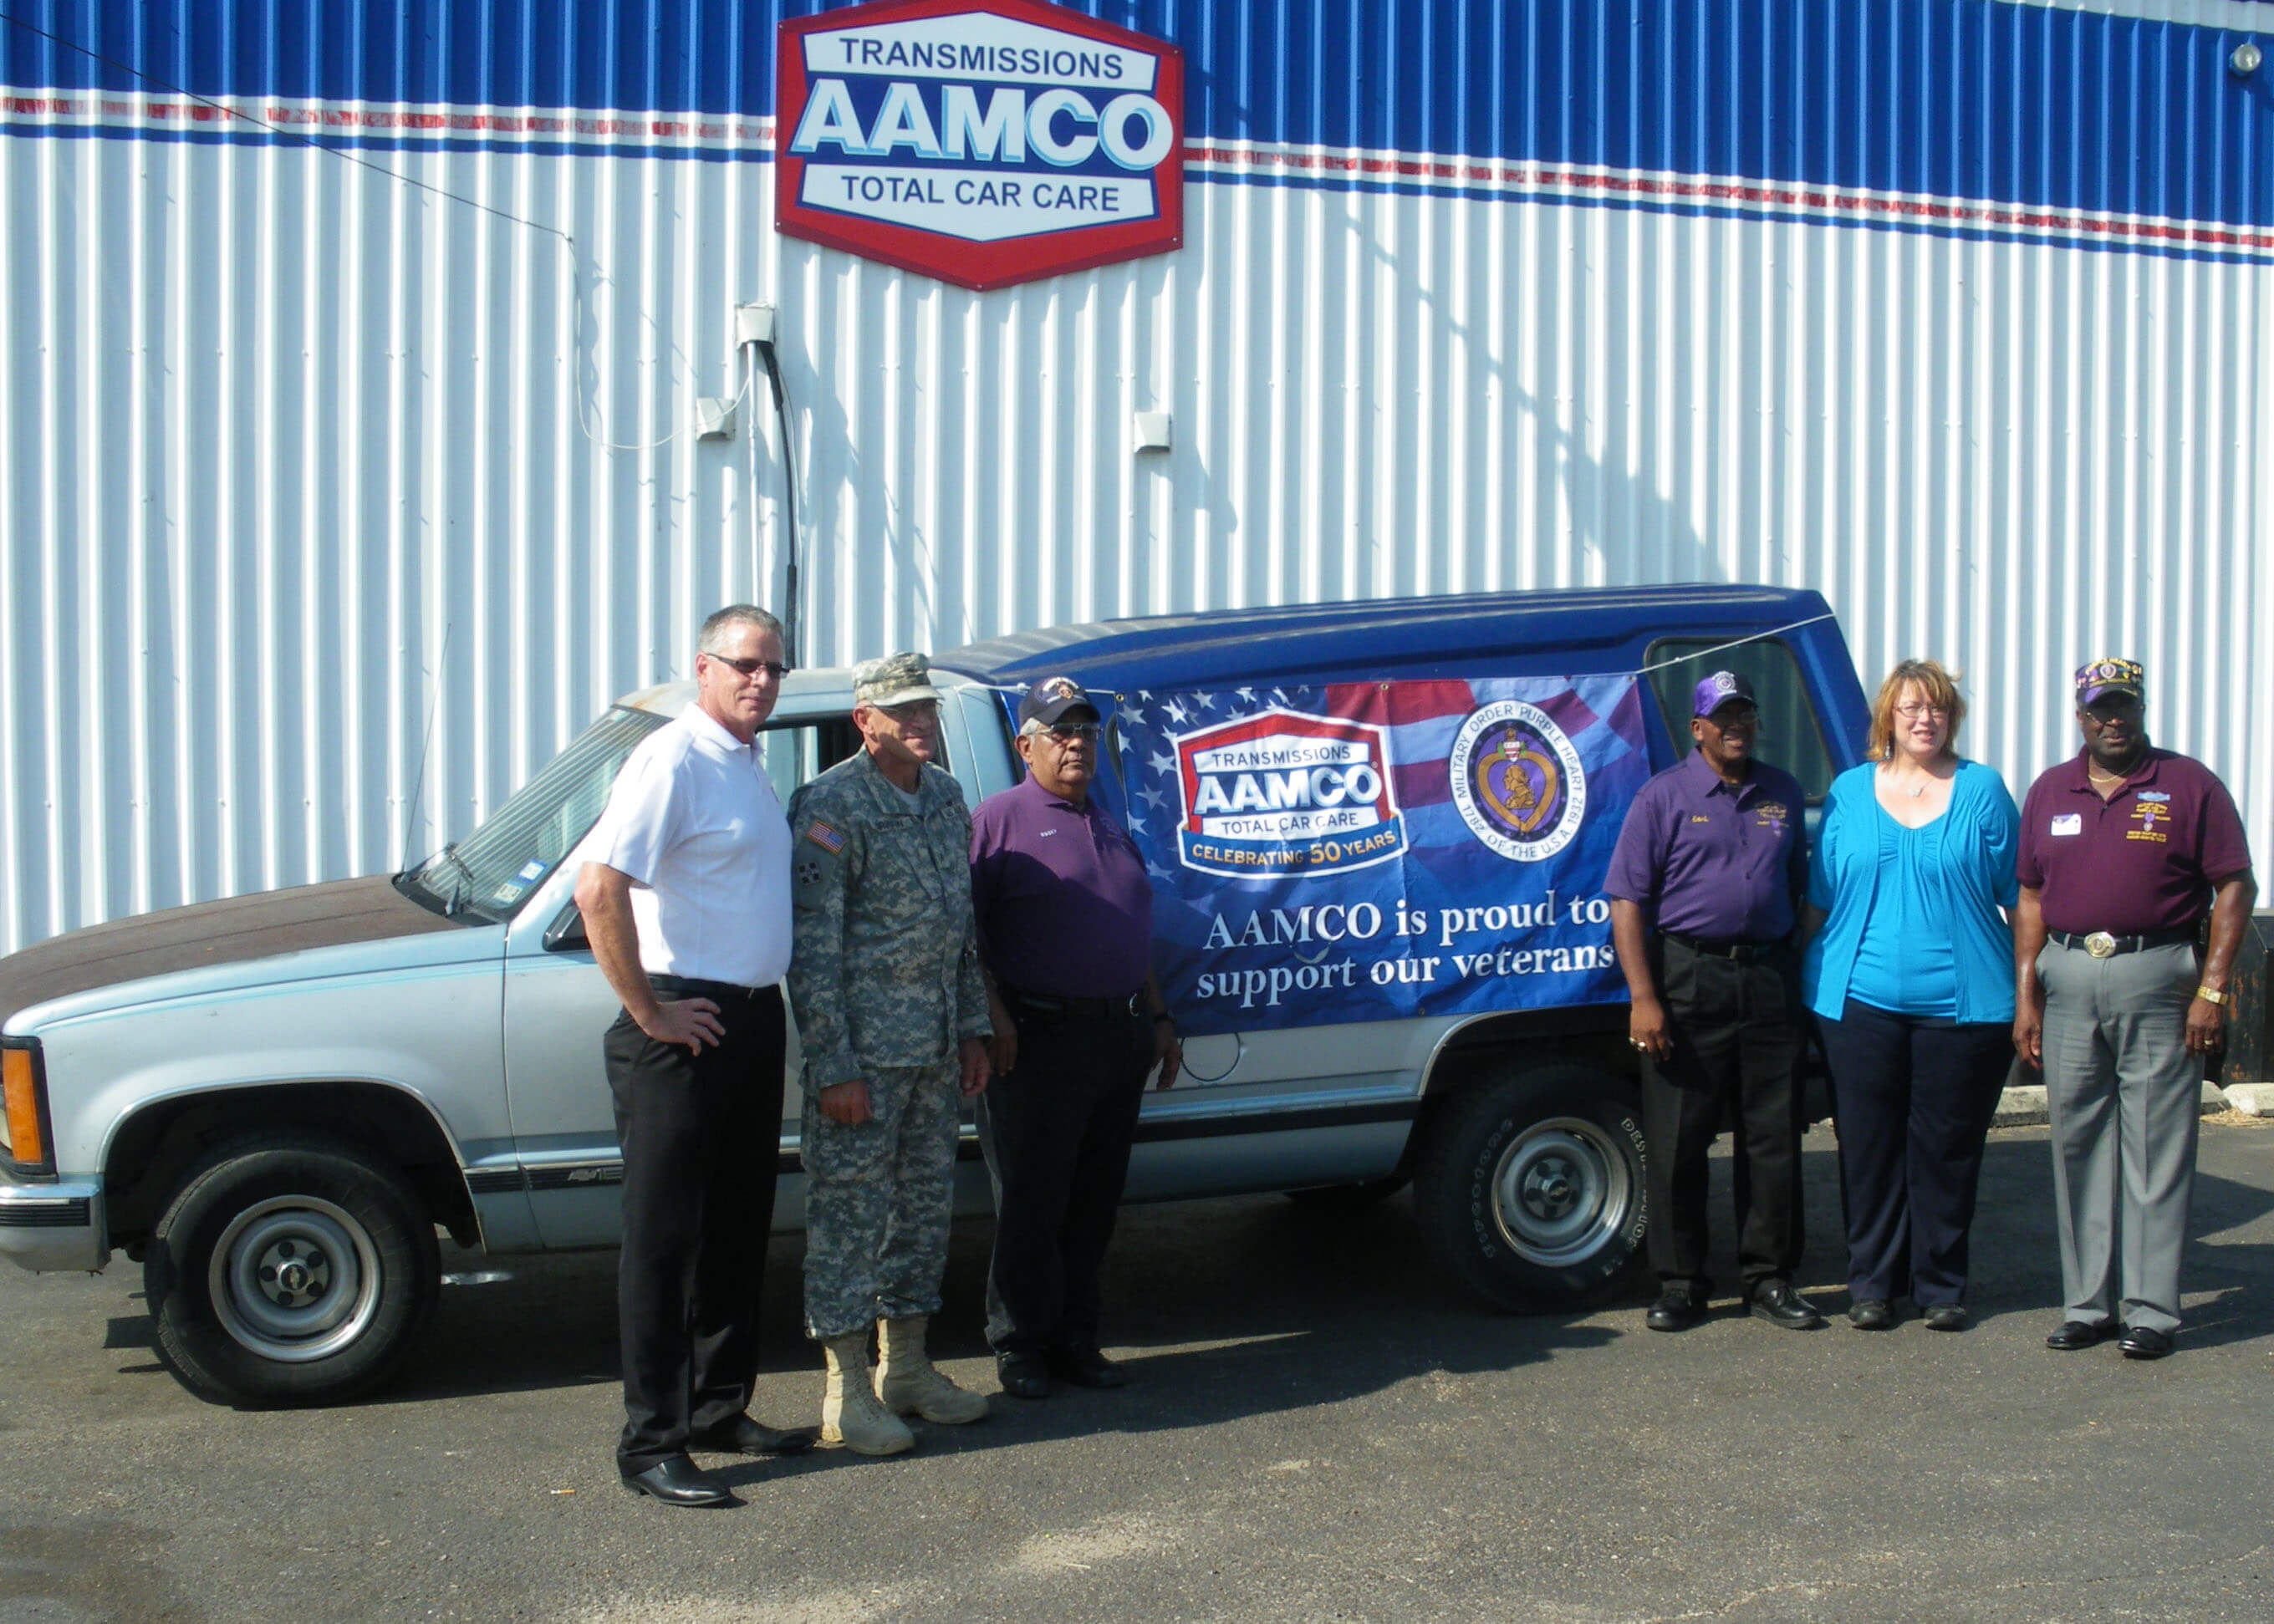 AAMCO 50 Cars in 50 States, in Texas